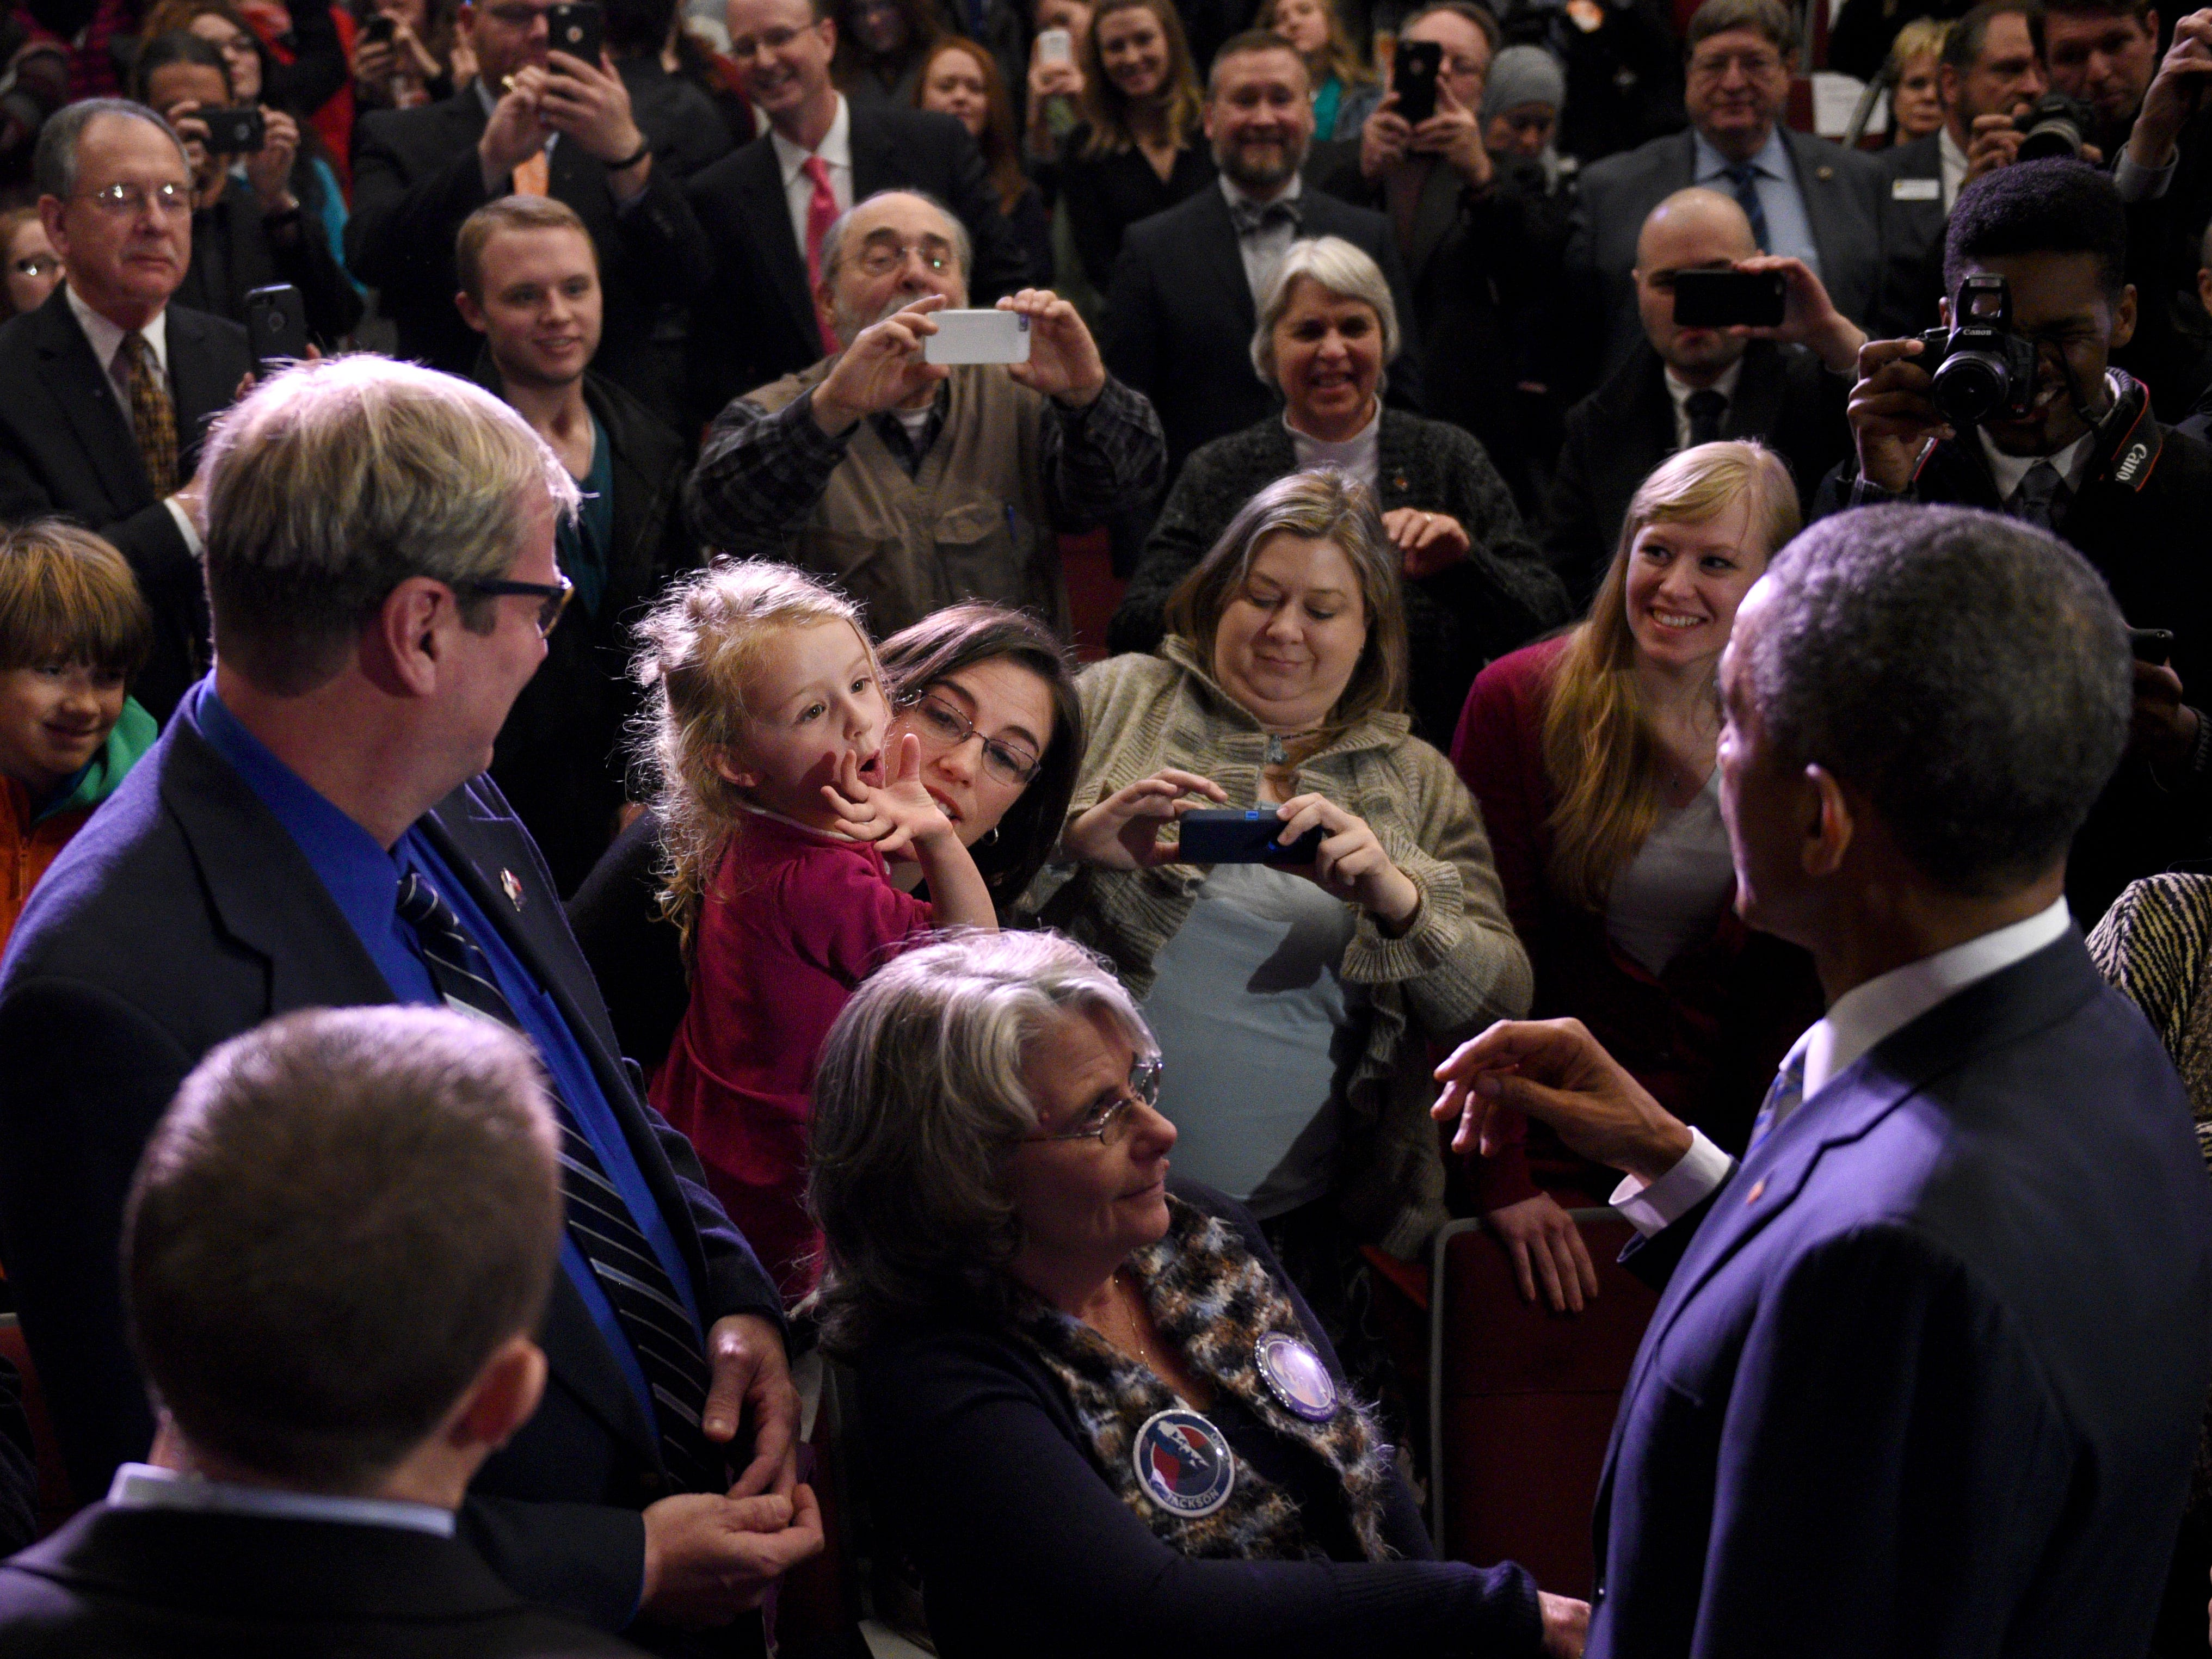 Covering a Presidential visit is fun, hectic, and challenging as you try and capture some photo others don't see. Young Kathryn Durr gave me that photo as she yells at President Obama to get his attention after he finished speaking at Pellissippi State Community College in Knoxville Friday, Jan. 9, 2015.